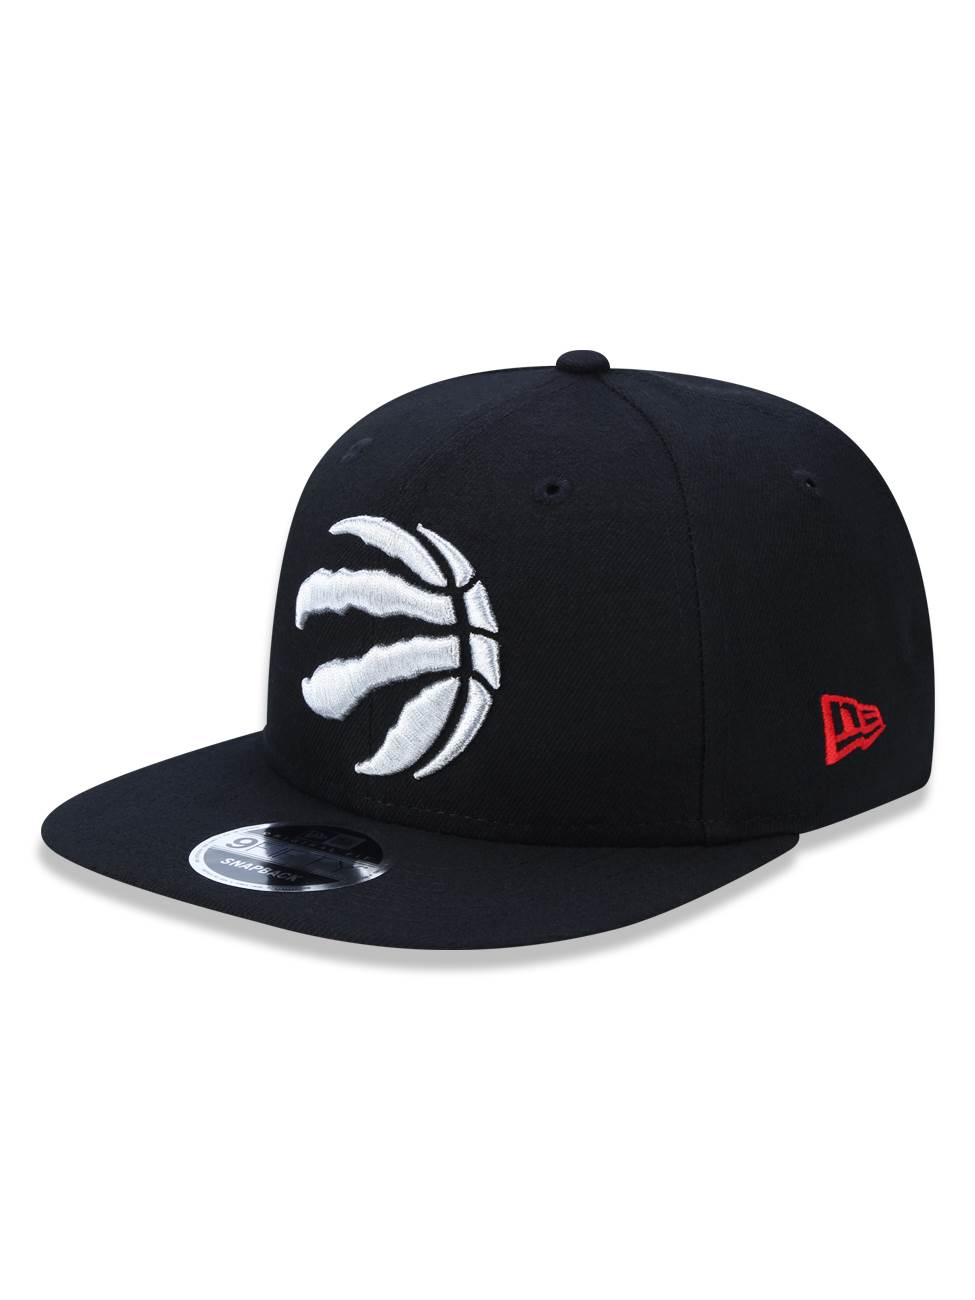 Boné New Era 9fifty NBA Toronto Raptors Black